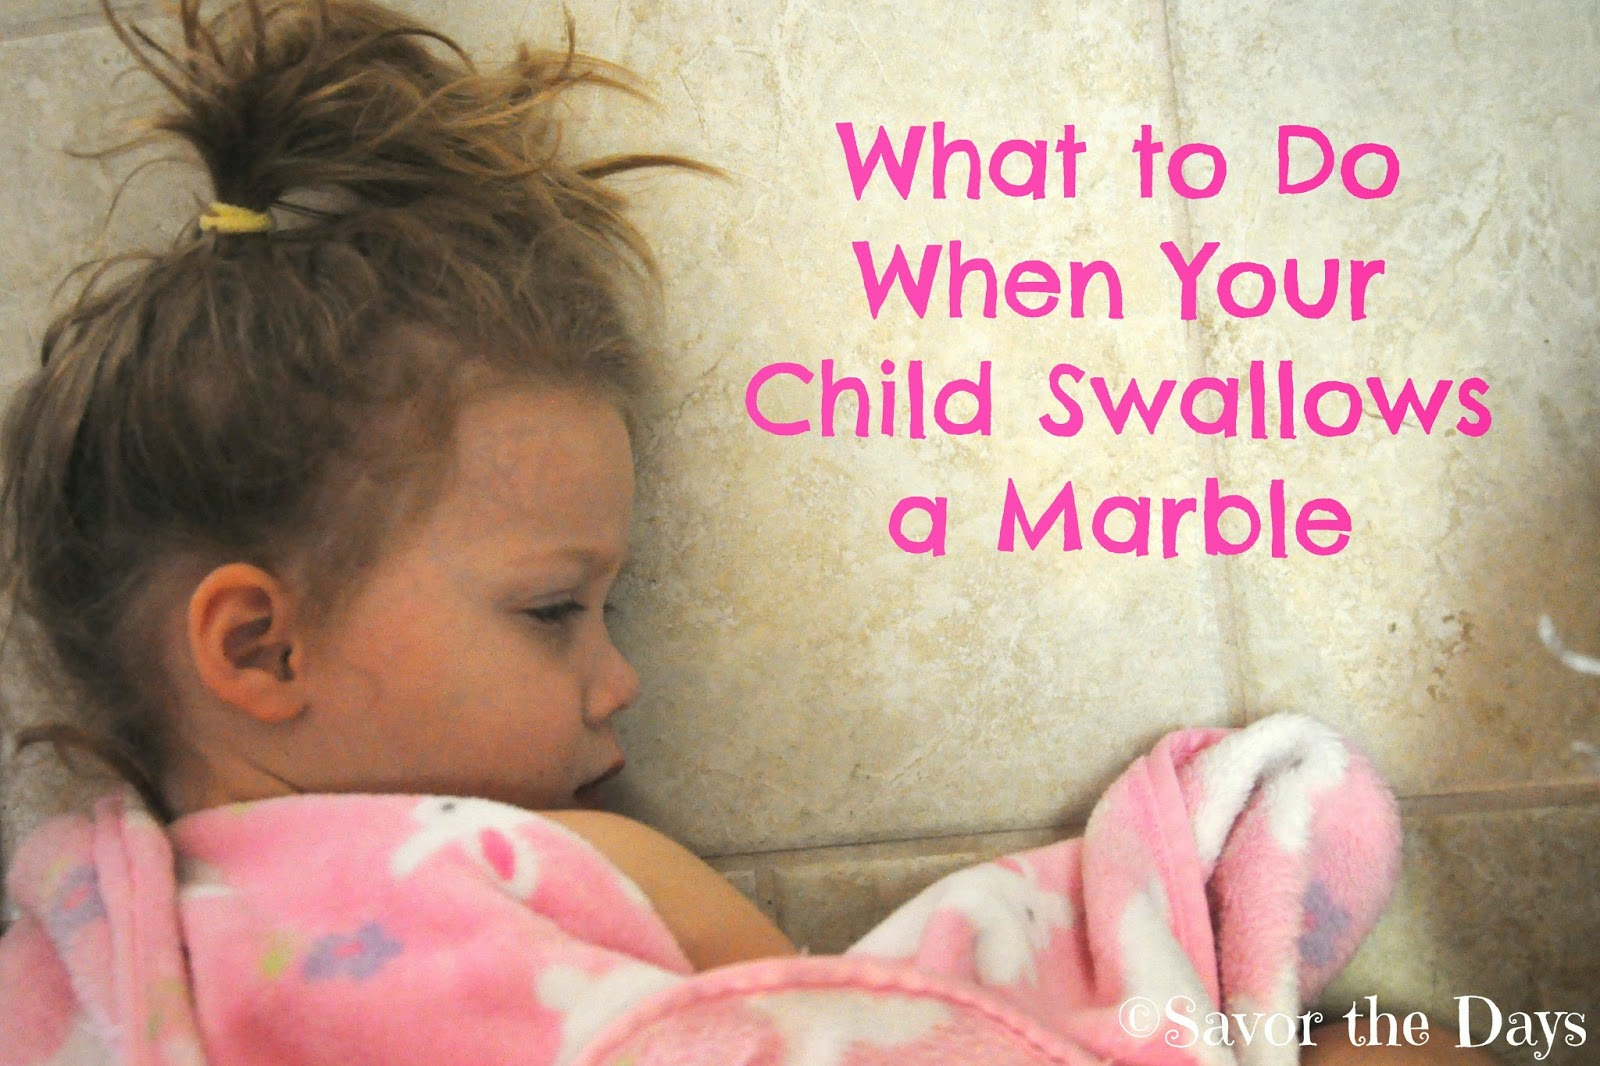 What to Do When Your Child Swallows a Marble